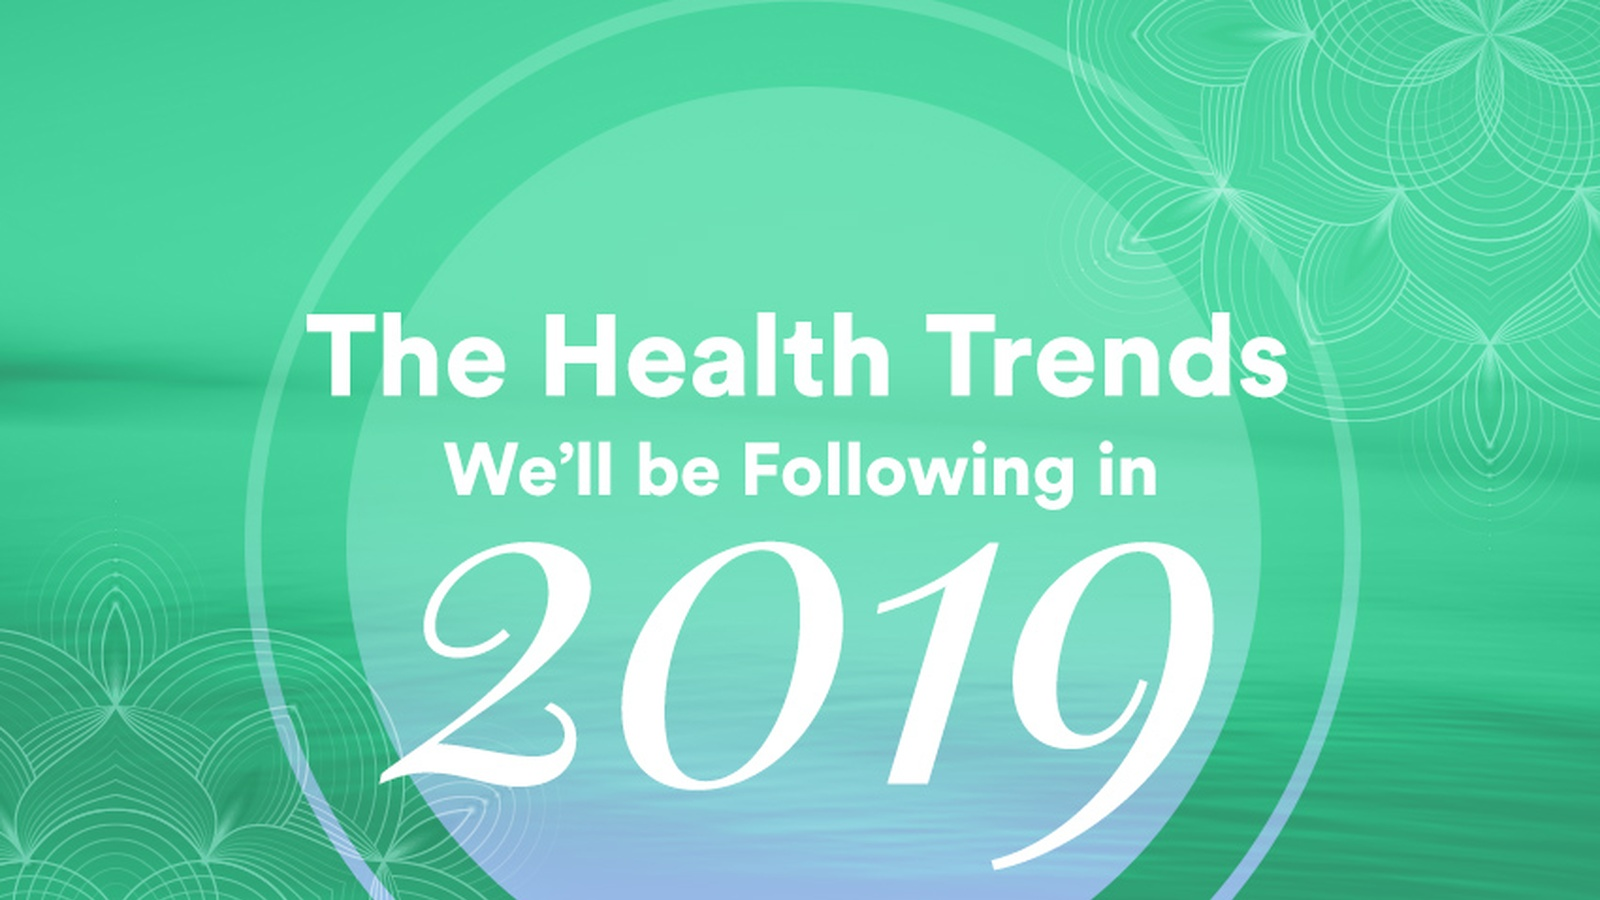 The Health Trends We'll Be Following in 2019